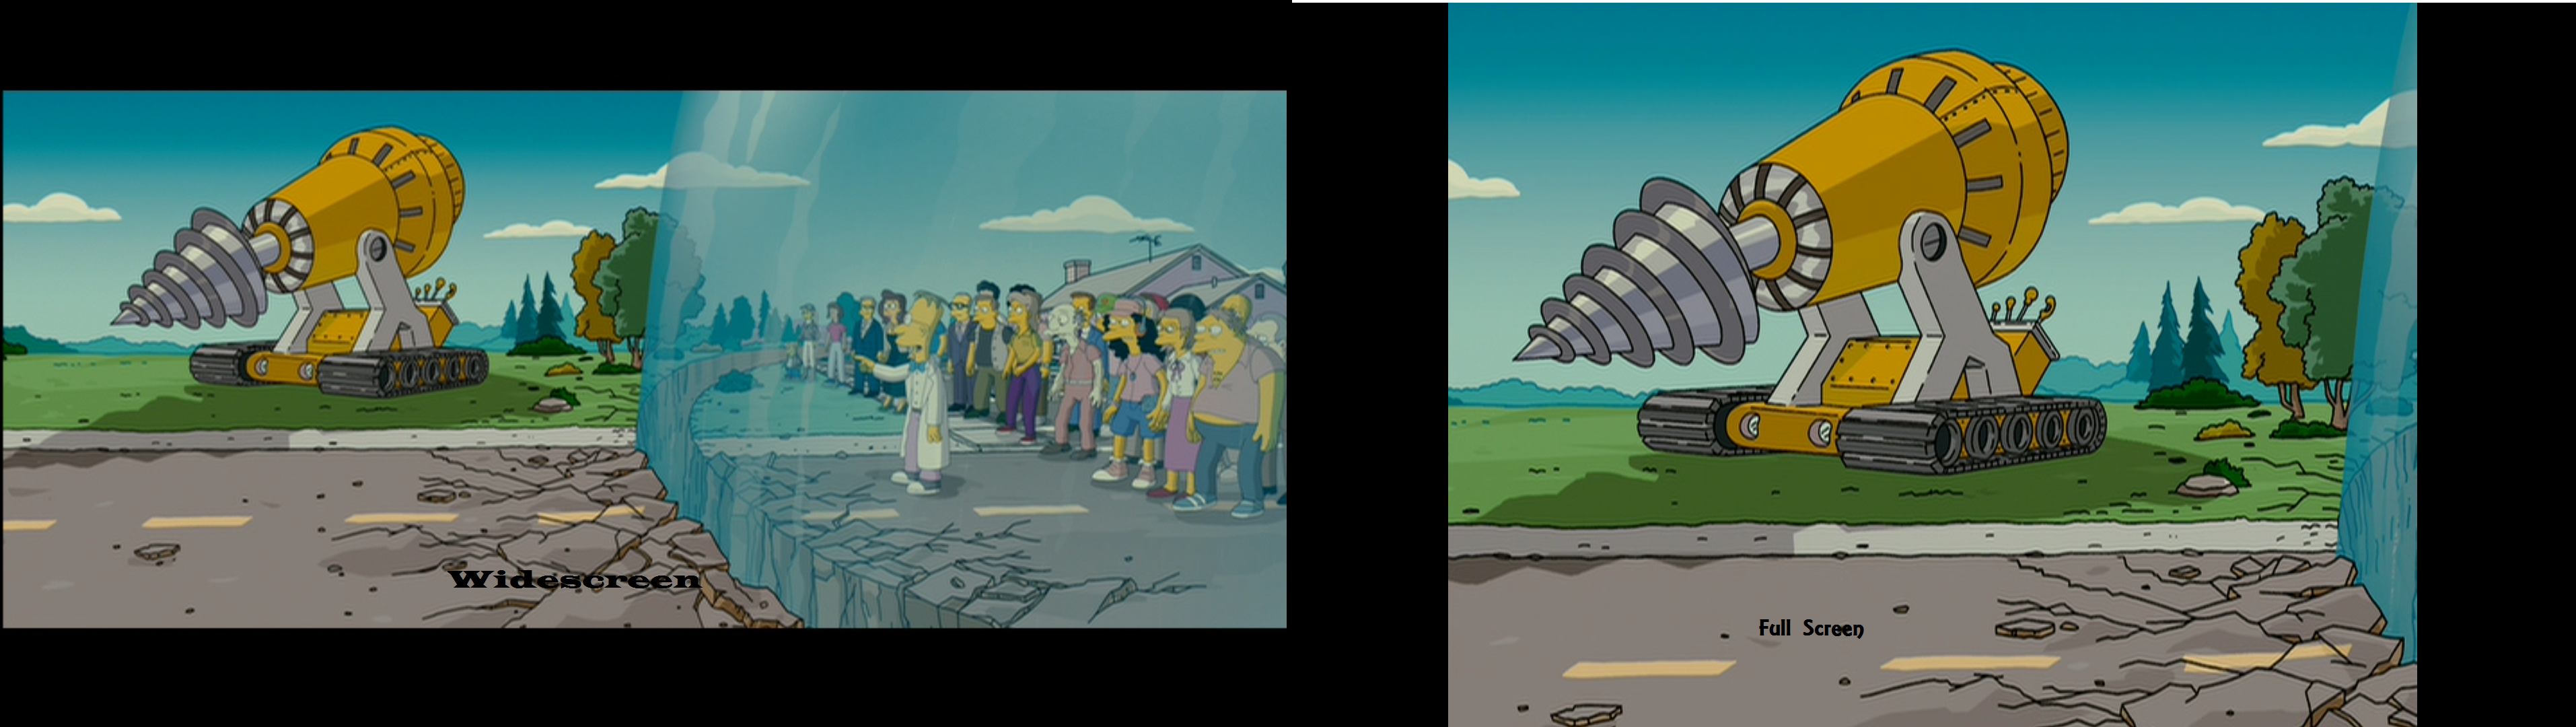 The Simpsons Movie Widescreen Vs Full Screen By Sonicmasher On Deviantart